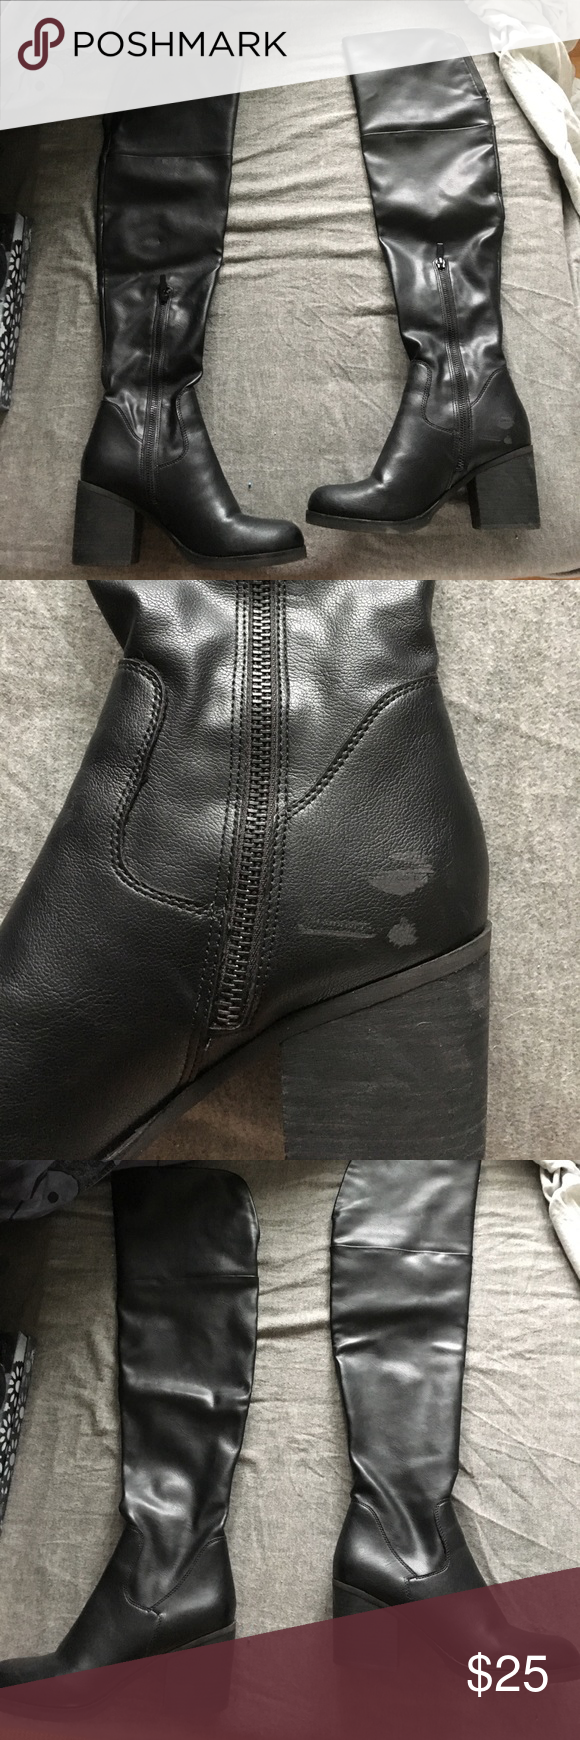 Steve Madden odyssey over the knee boots size 7 I love these boots! But need a larger size, they have minor scuffs which is why the low price but nothing noticeable when wearing as I have had it colored in to match the shade of black by a shoe shop. Make an offer! Steve Madden Shoes